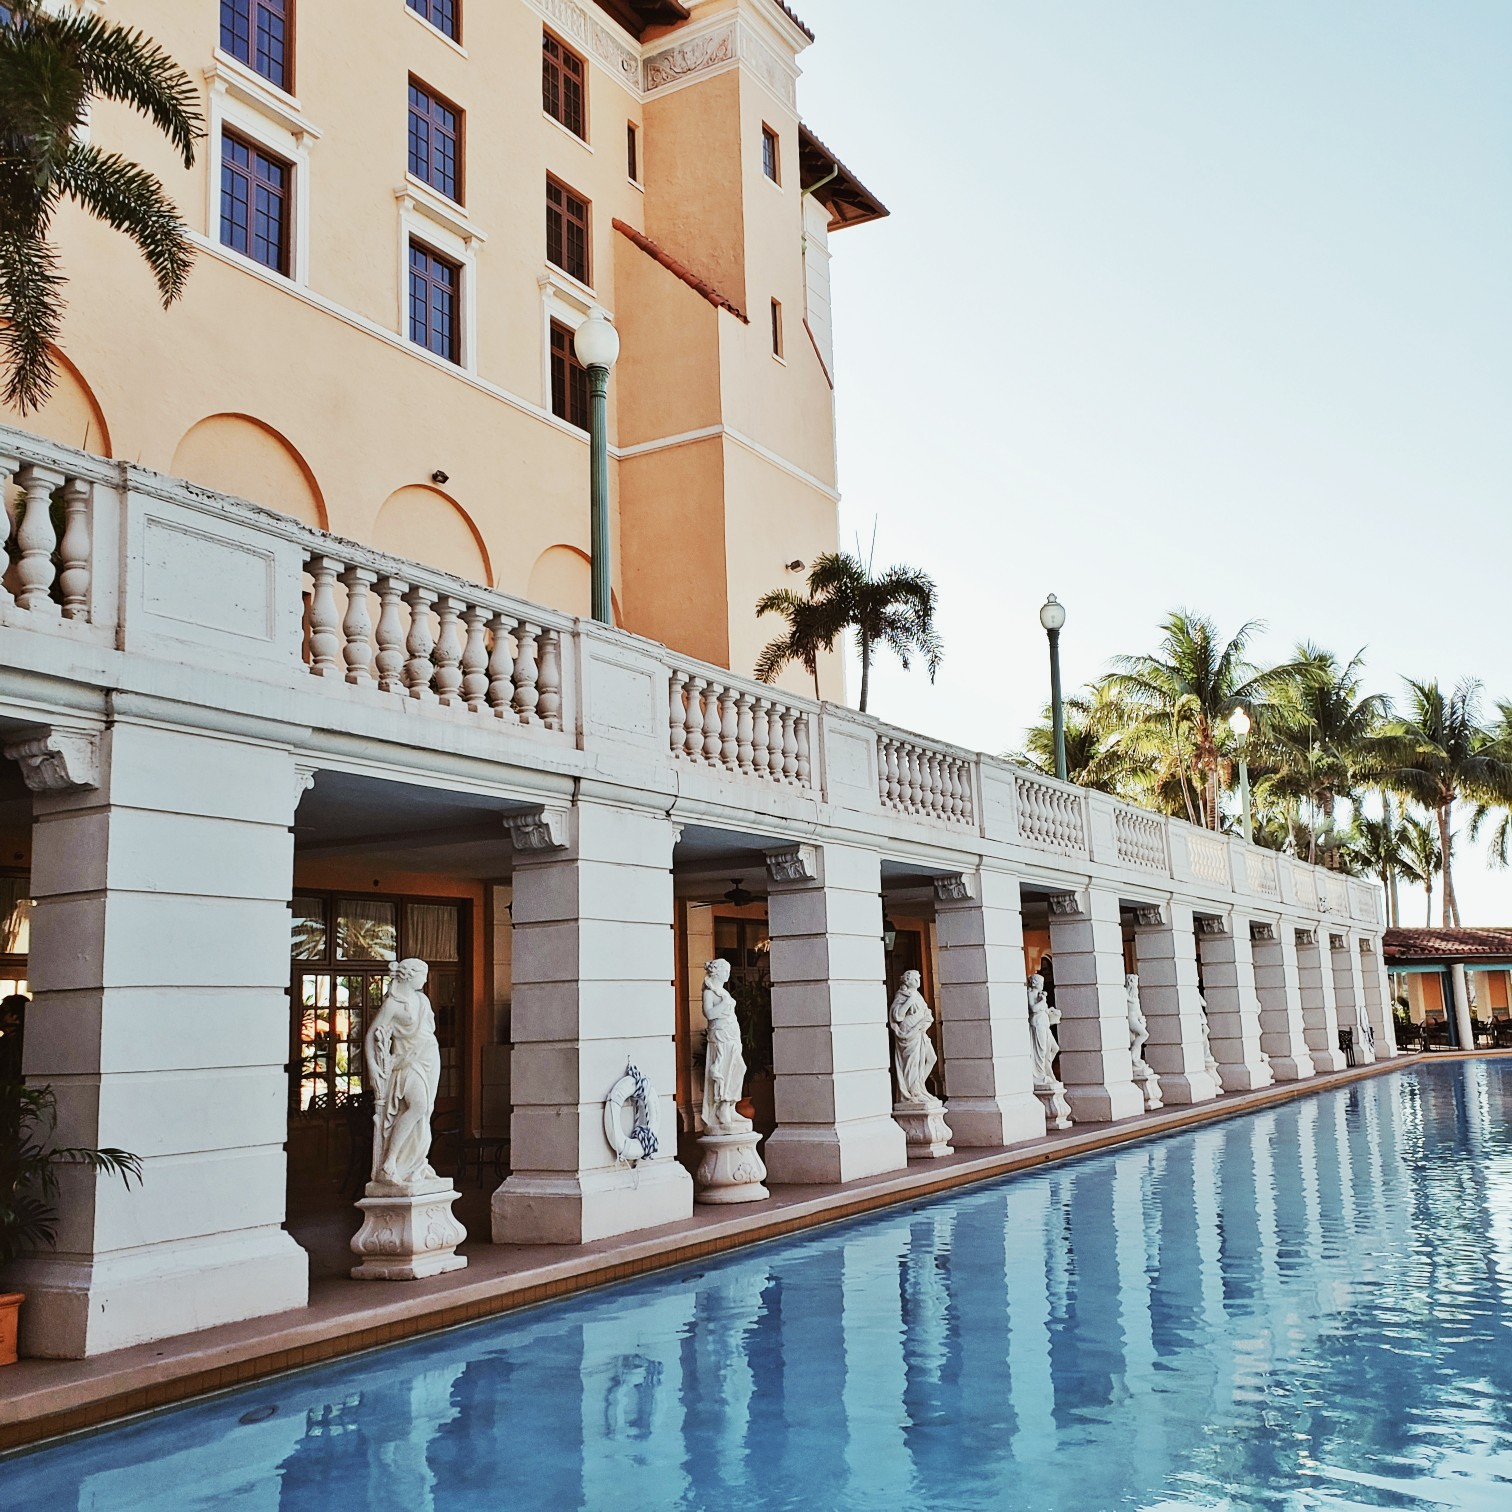 Biltmore Hotel Miami Coral Gables Luxury Staycation Vintage Pool